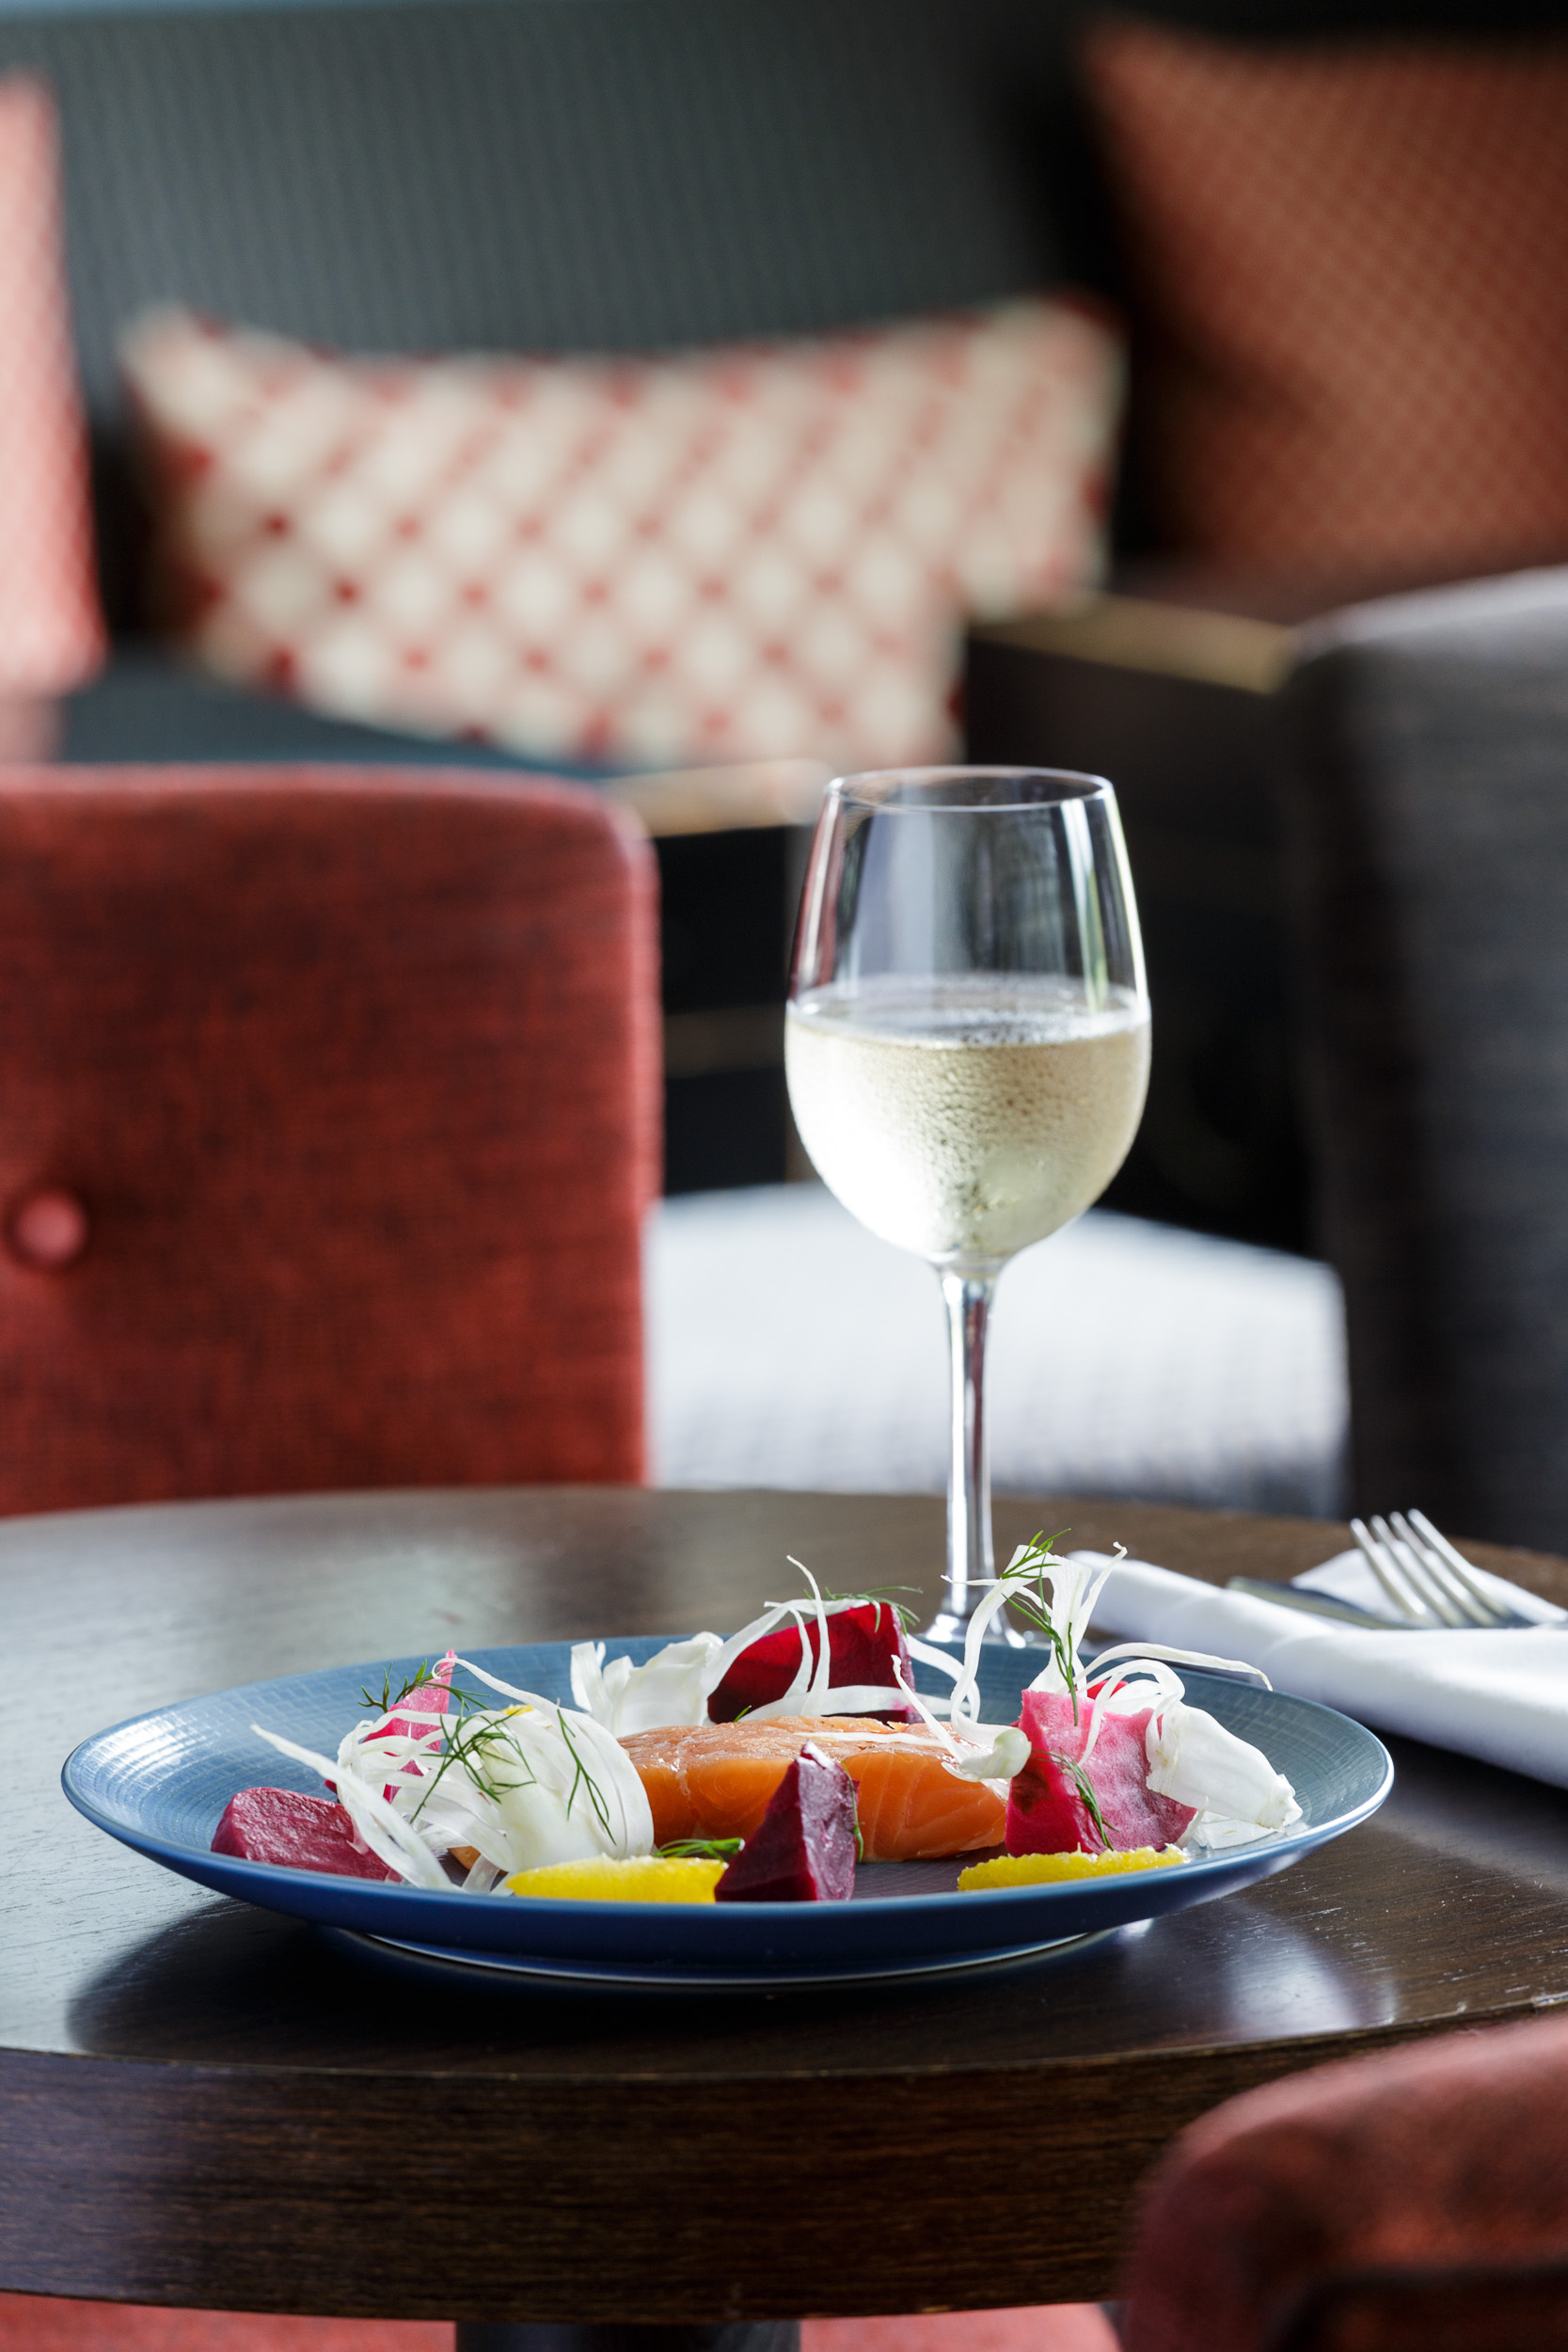 Food Photography at Bowood House Hotel, Wiltshire